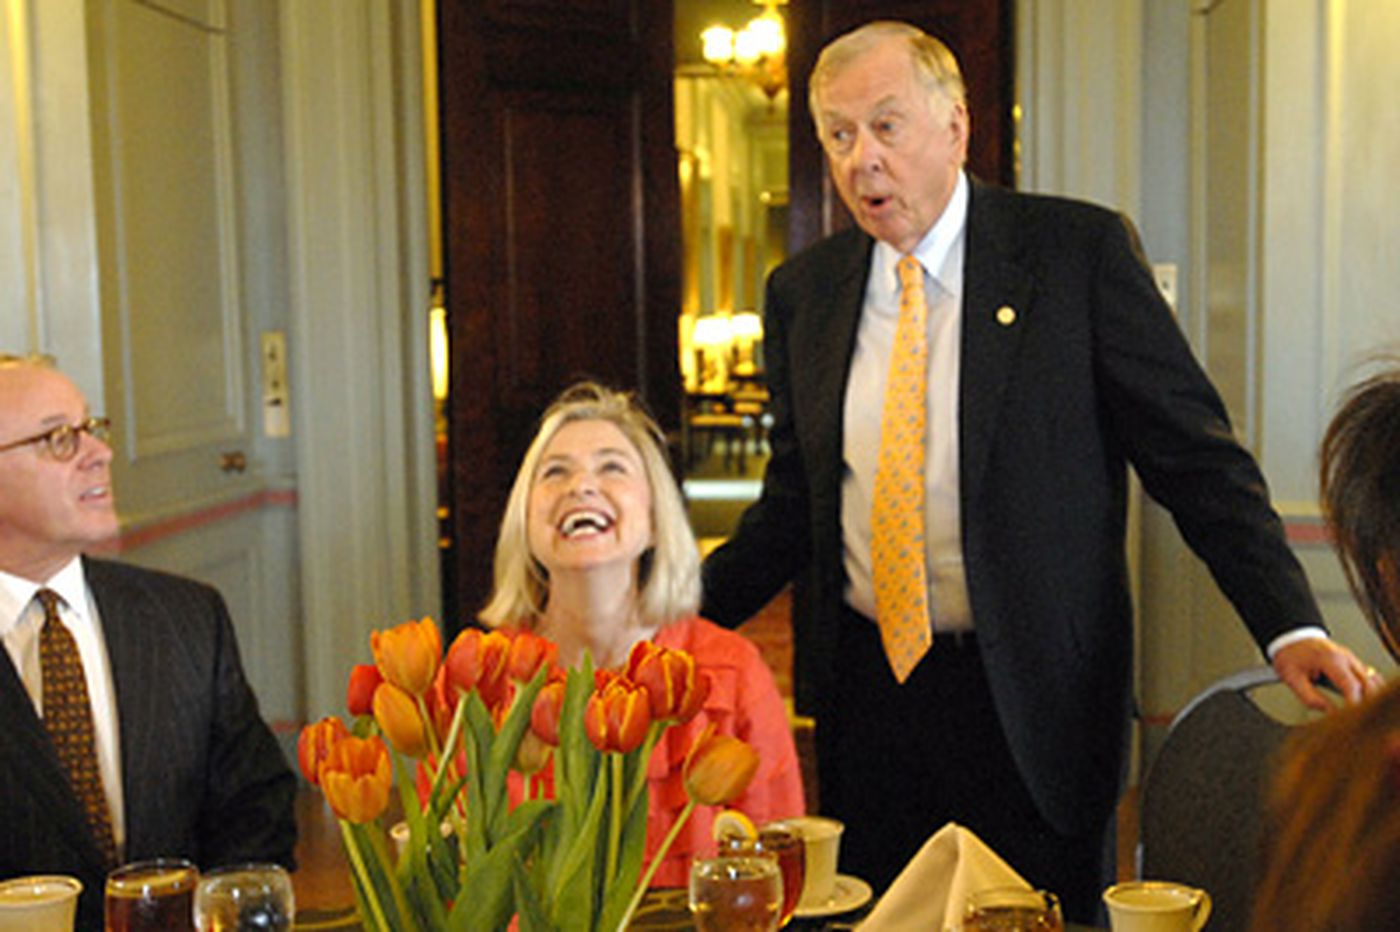 T. Boone Pickens offers energy answer